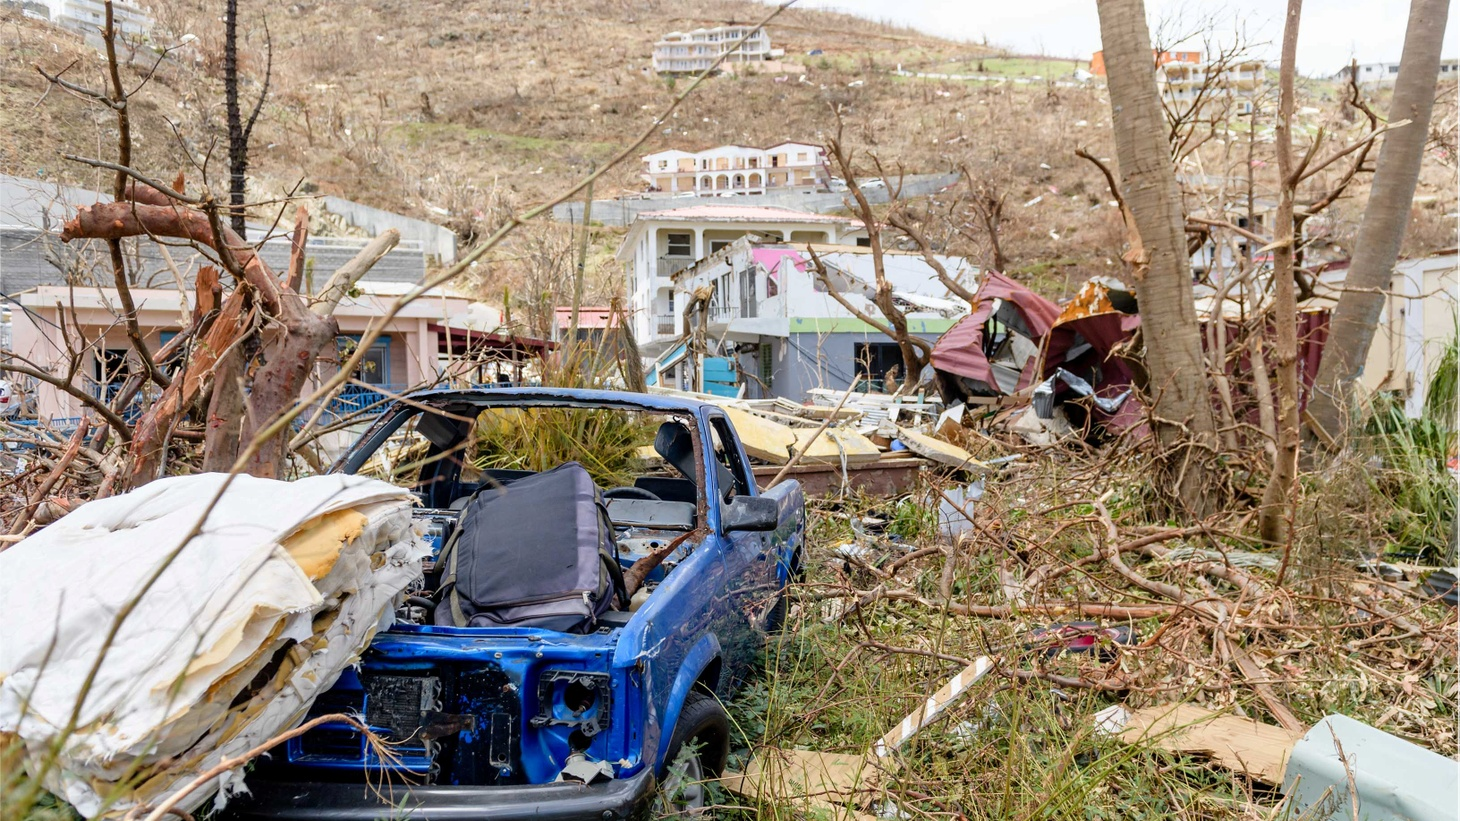 In the wake of Irma, Florida is facing flooded streets and downed trees and power lines. In some parts of the Caribbean, the situation is much worse. Parts of the U.S. Virgin Islands took a direct hit, and people there are struggling to get help. The relief effort is just getting started. We hear from a reporter and a resident evacuated from St. Martin.